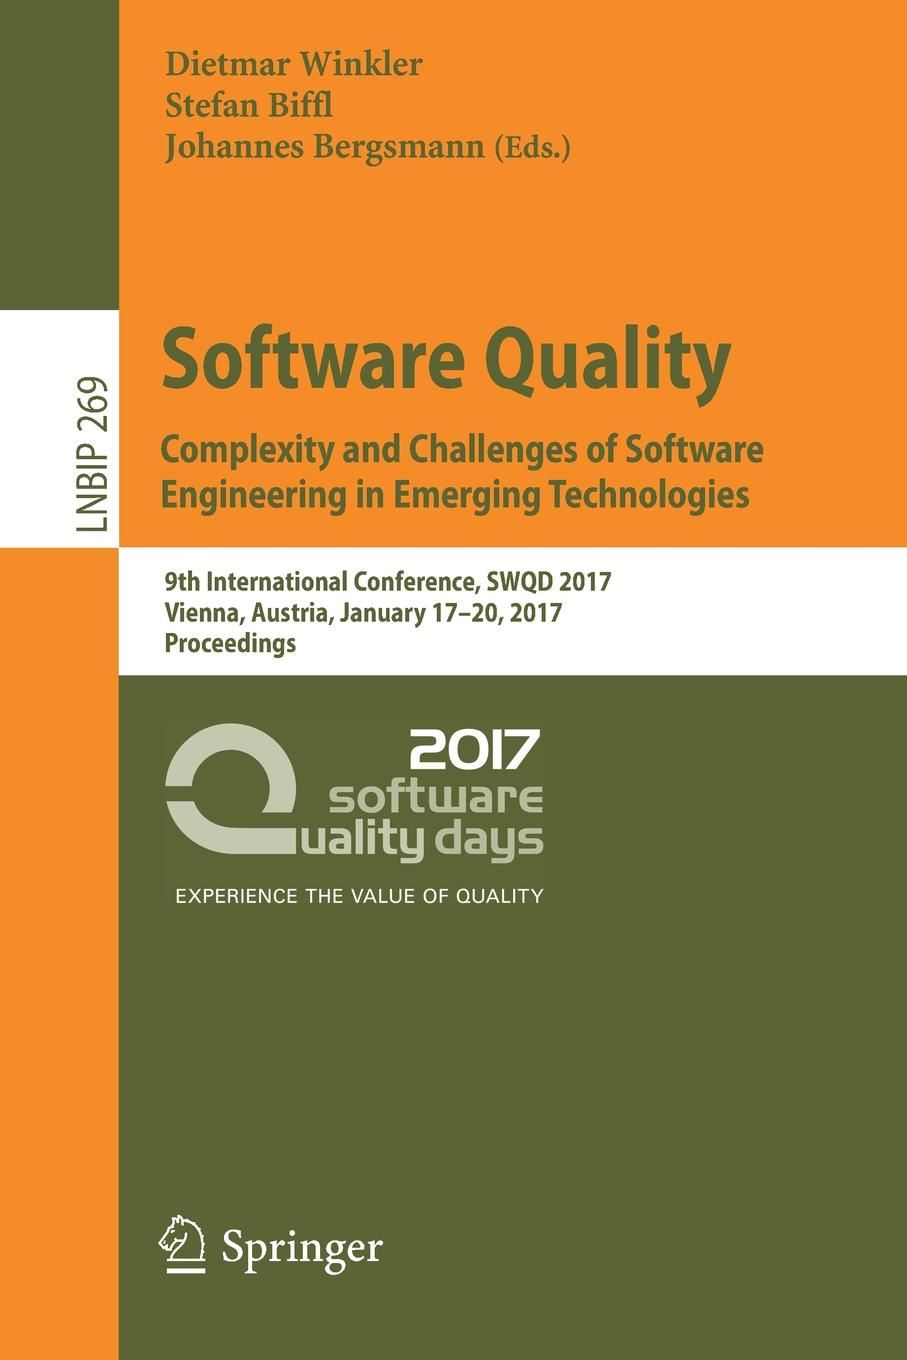 Software Quality. Complexity and Challenges of Software Engineering in Emerging Technologies. 9th International Conference, SWQD 2017, Vienna, Austria, January 17-20, 2017, Proceedings goran bezanov software engineering